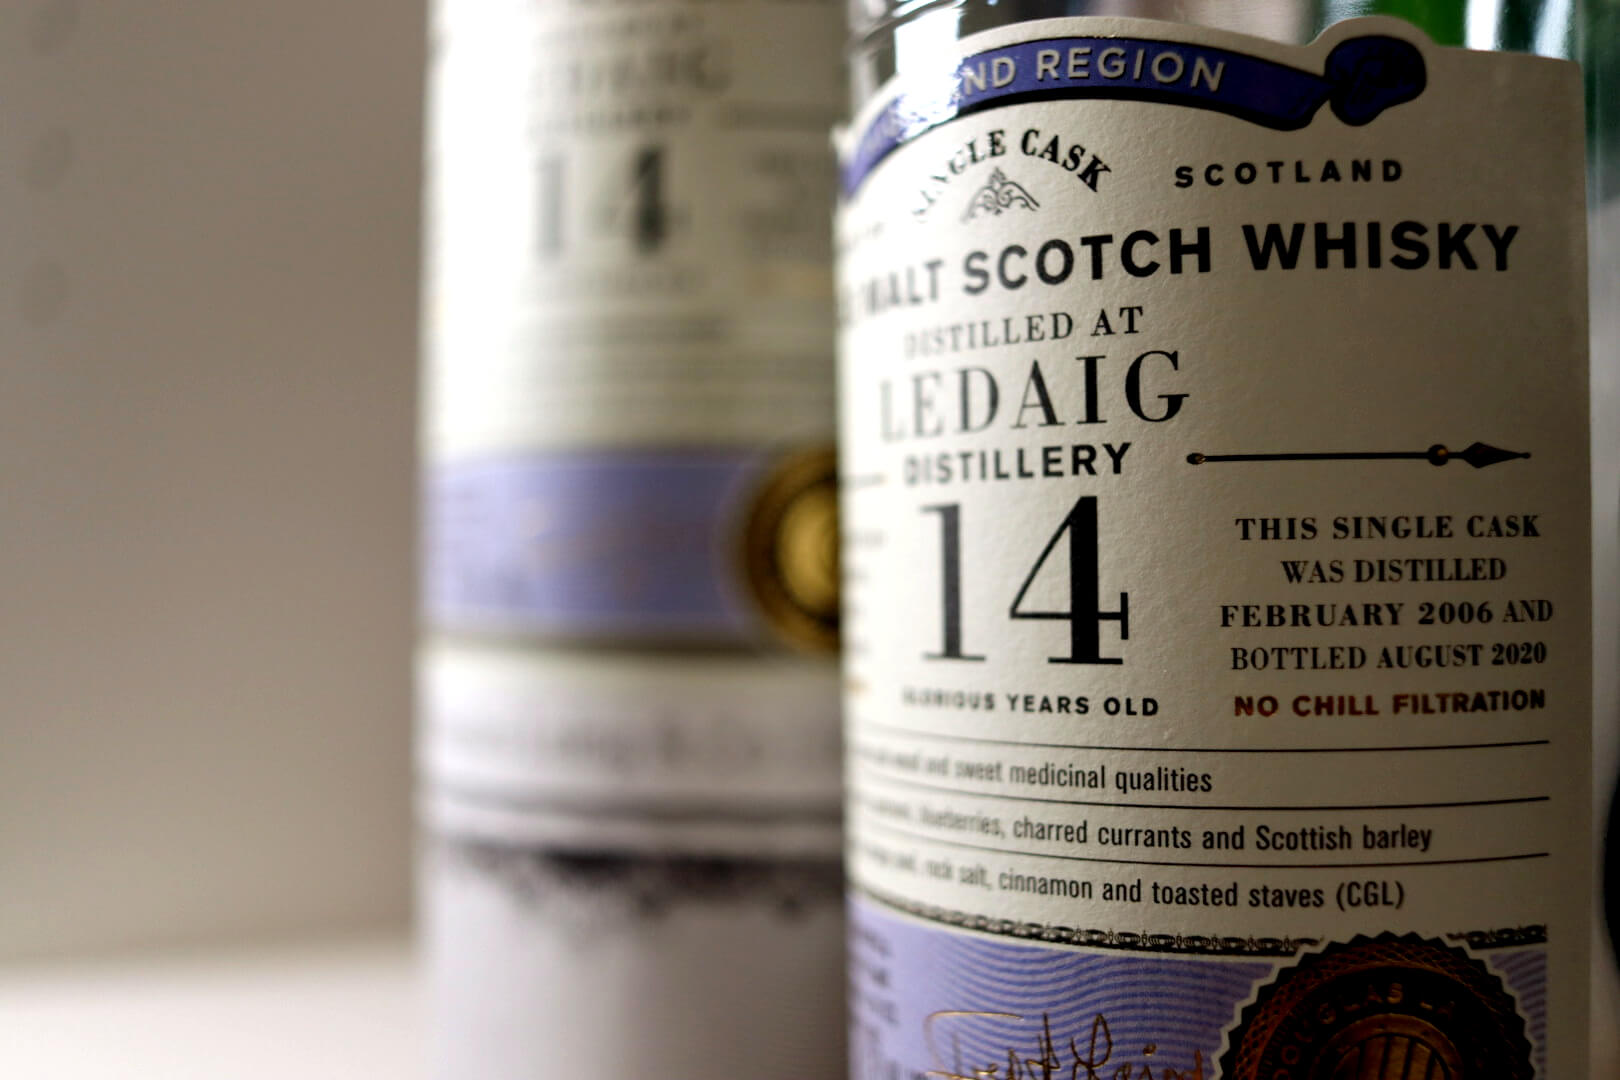 Whiskybesprechung #194: Ledaig 14 Jahre - Douglas Laing Old Particular